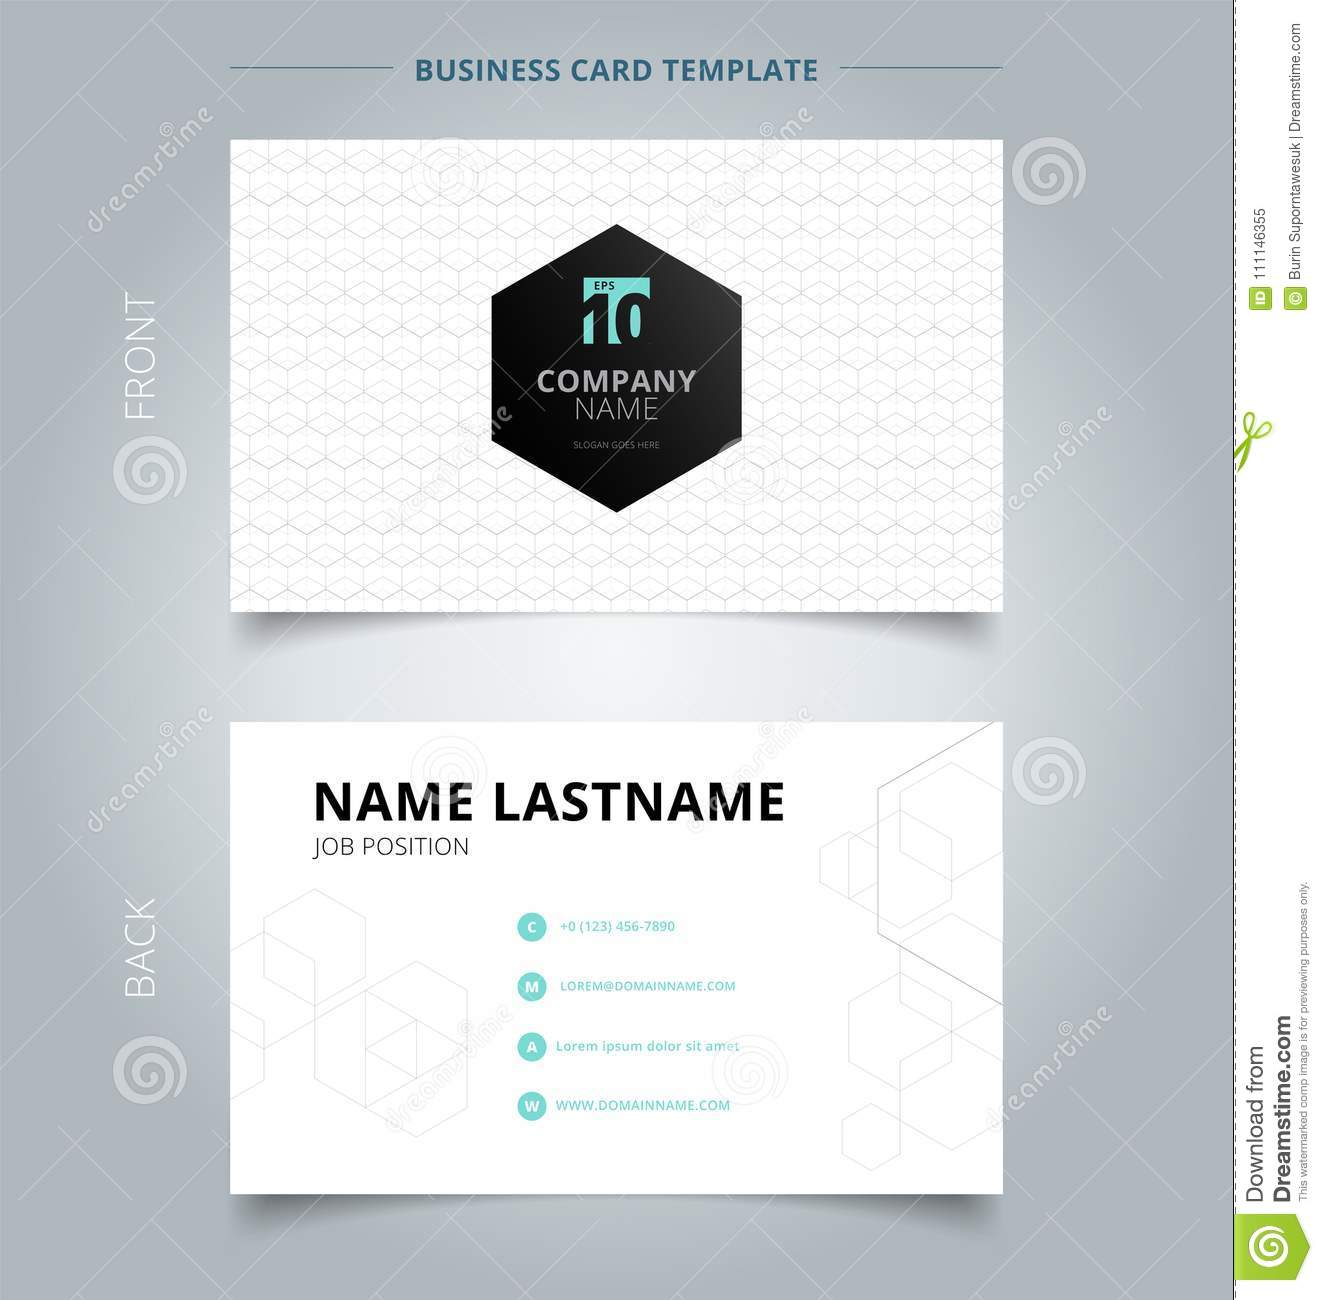 Creative business card and name card template geometric white g download creative business card and name card template geometric white g stock vector illustration reheart Choice Image